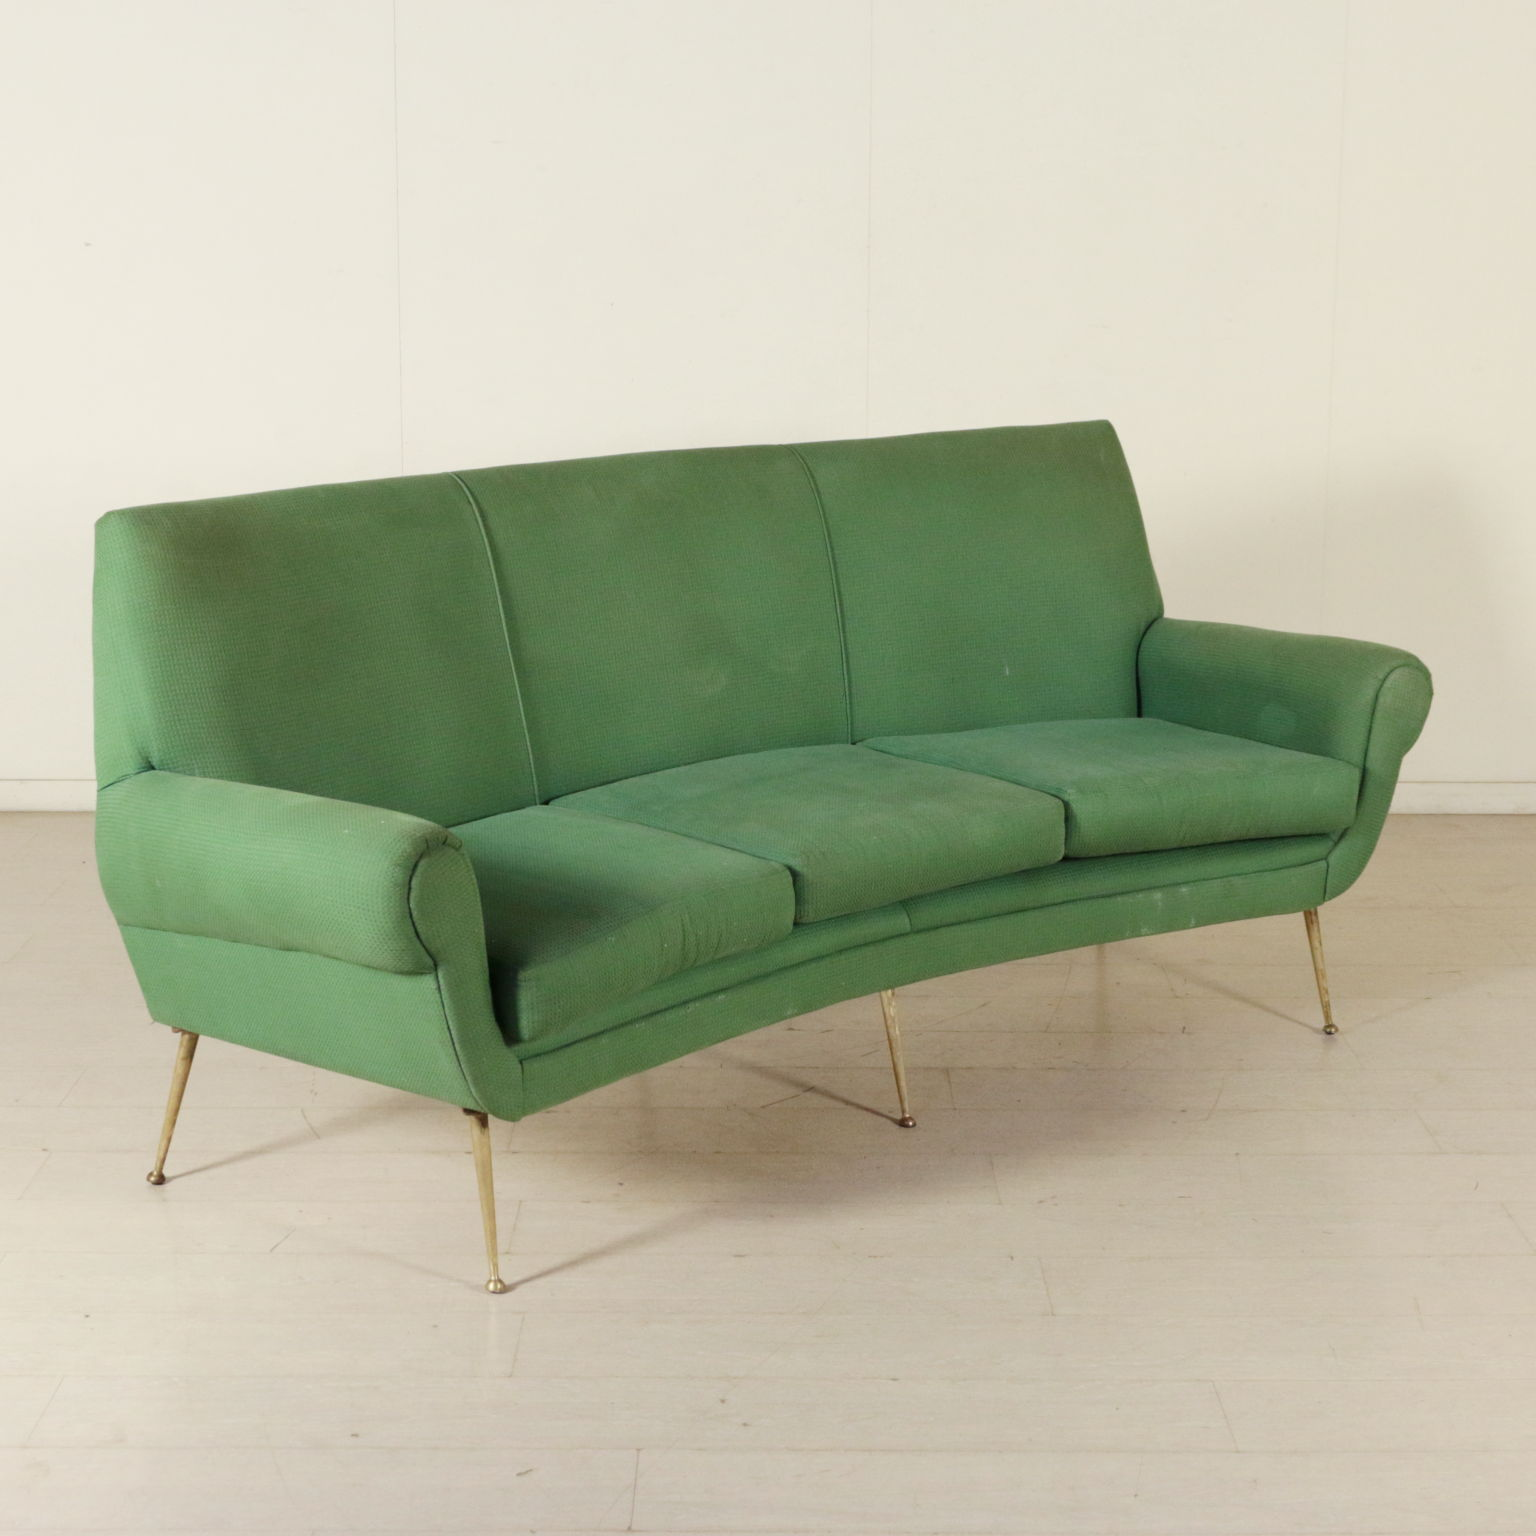 Sofa 60s Sofa Vintage Of The 50s 60s Sofas Modern Design Dimanoinmano It